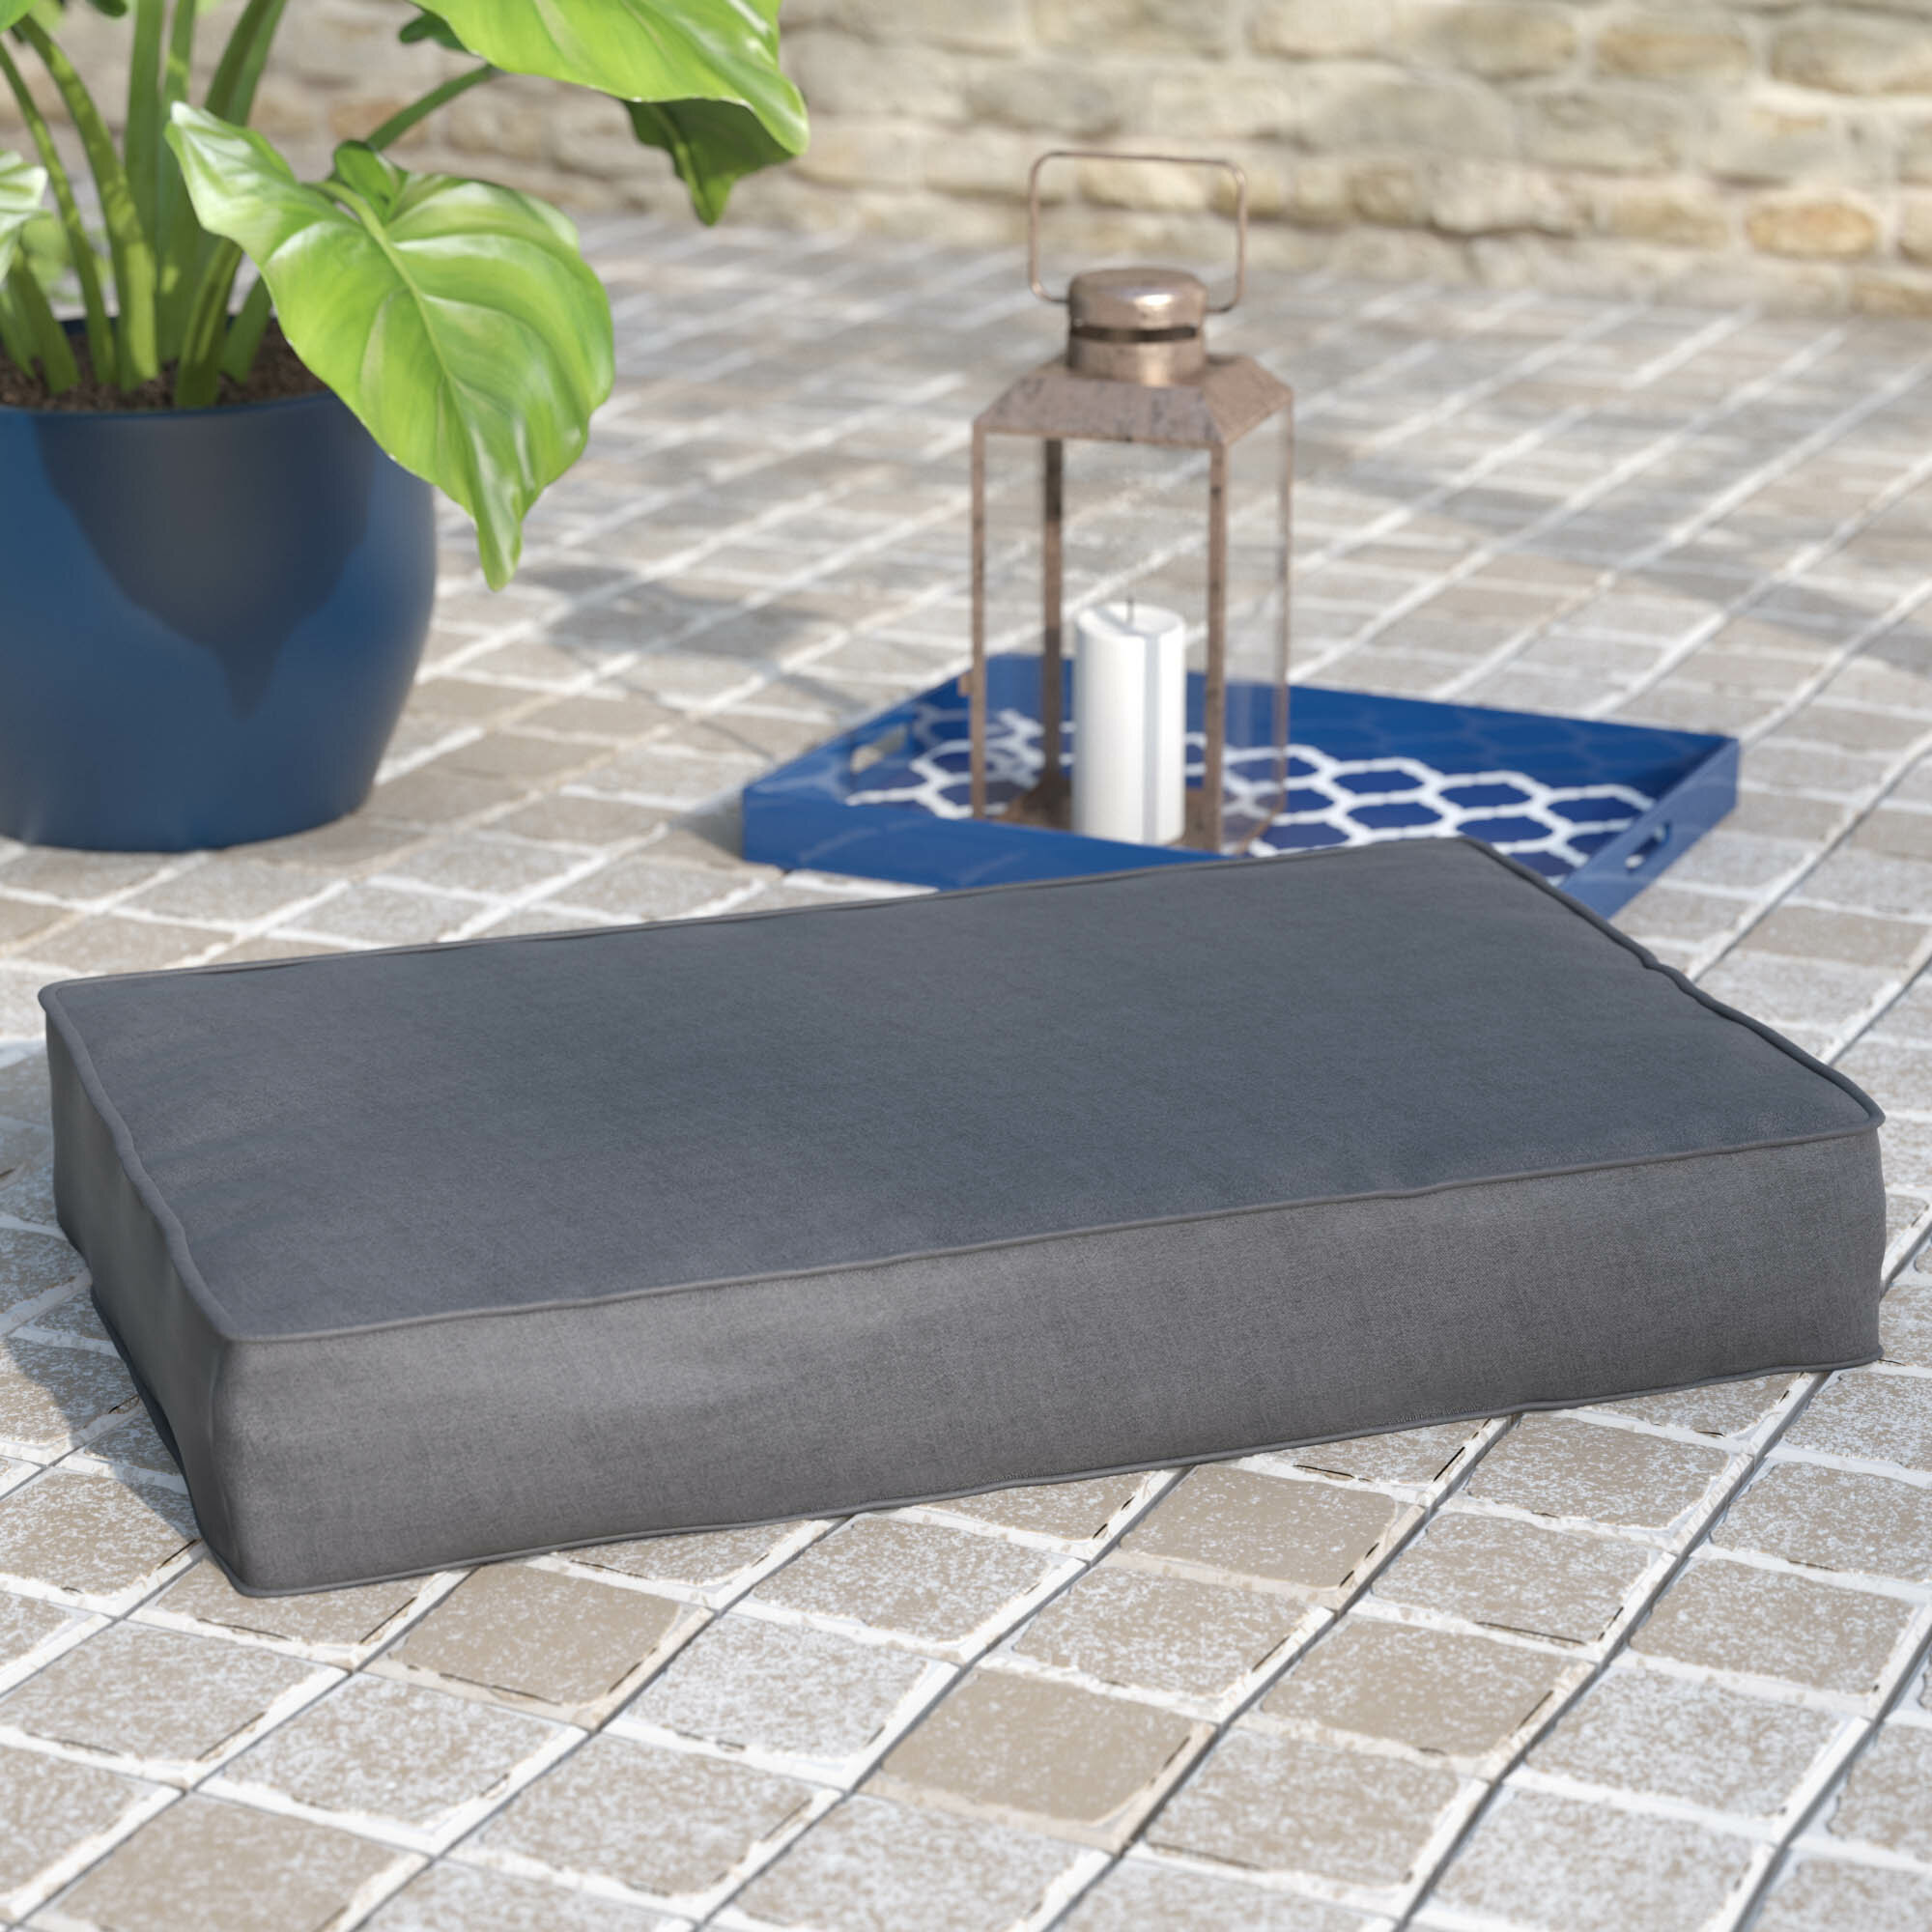 Rosecliff Heights Sunbrella Indoor Outdoor Floor Cushion Wayfair